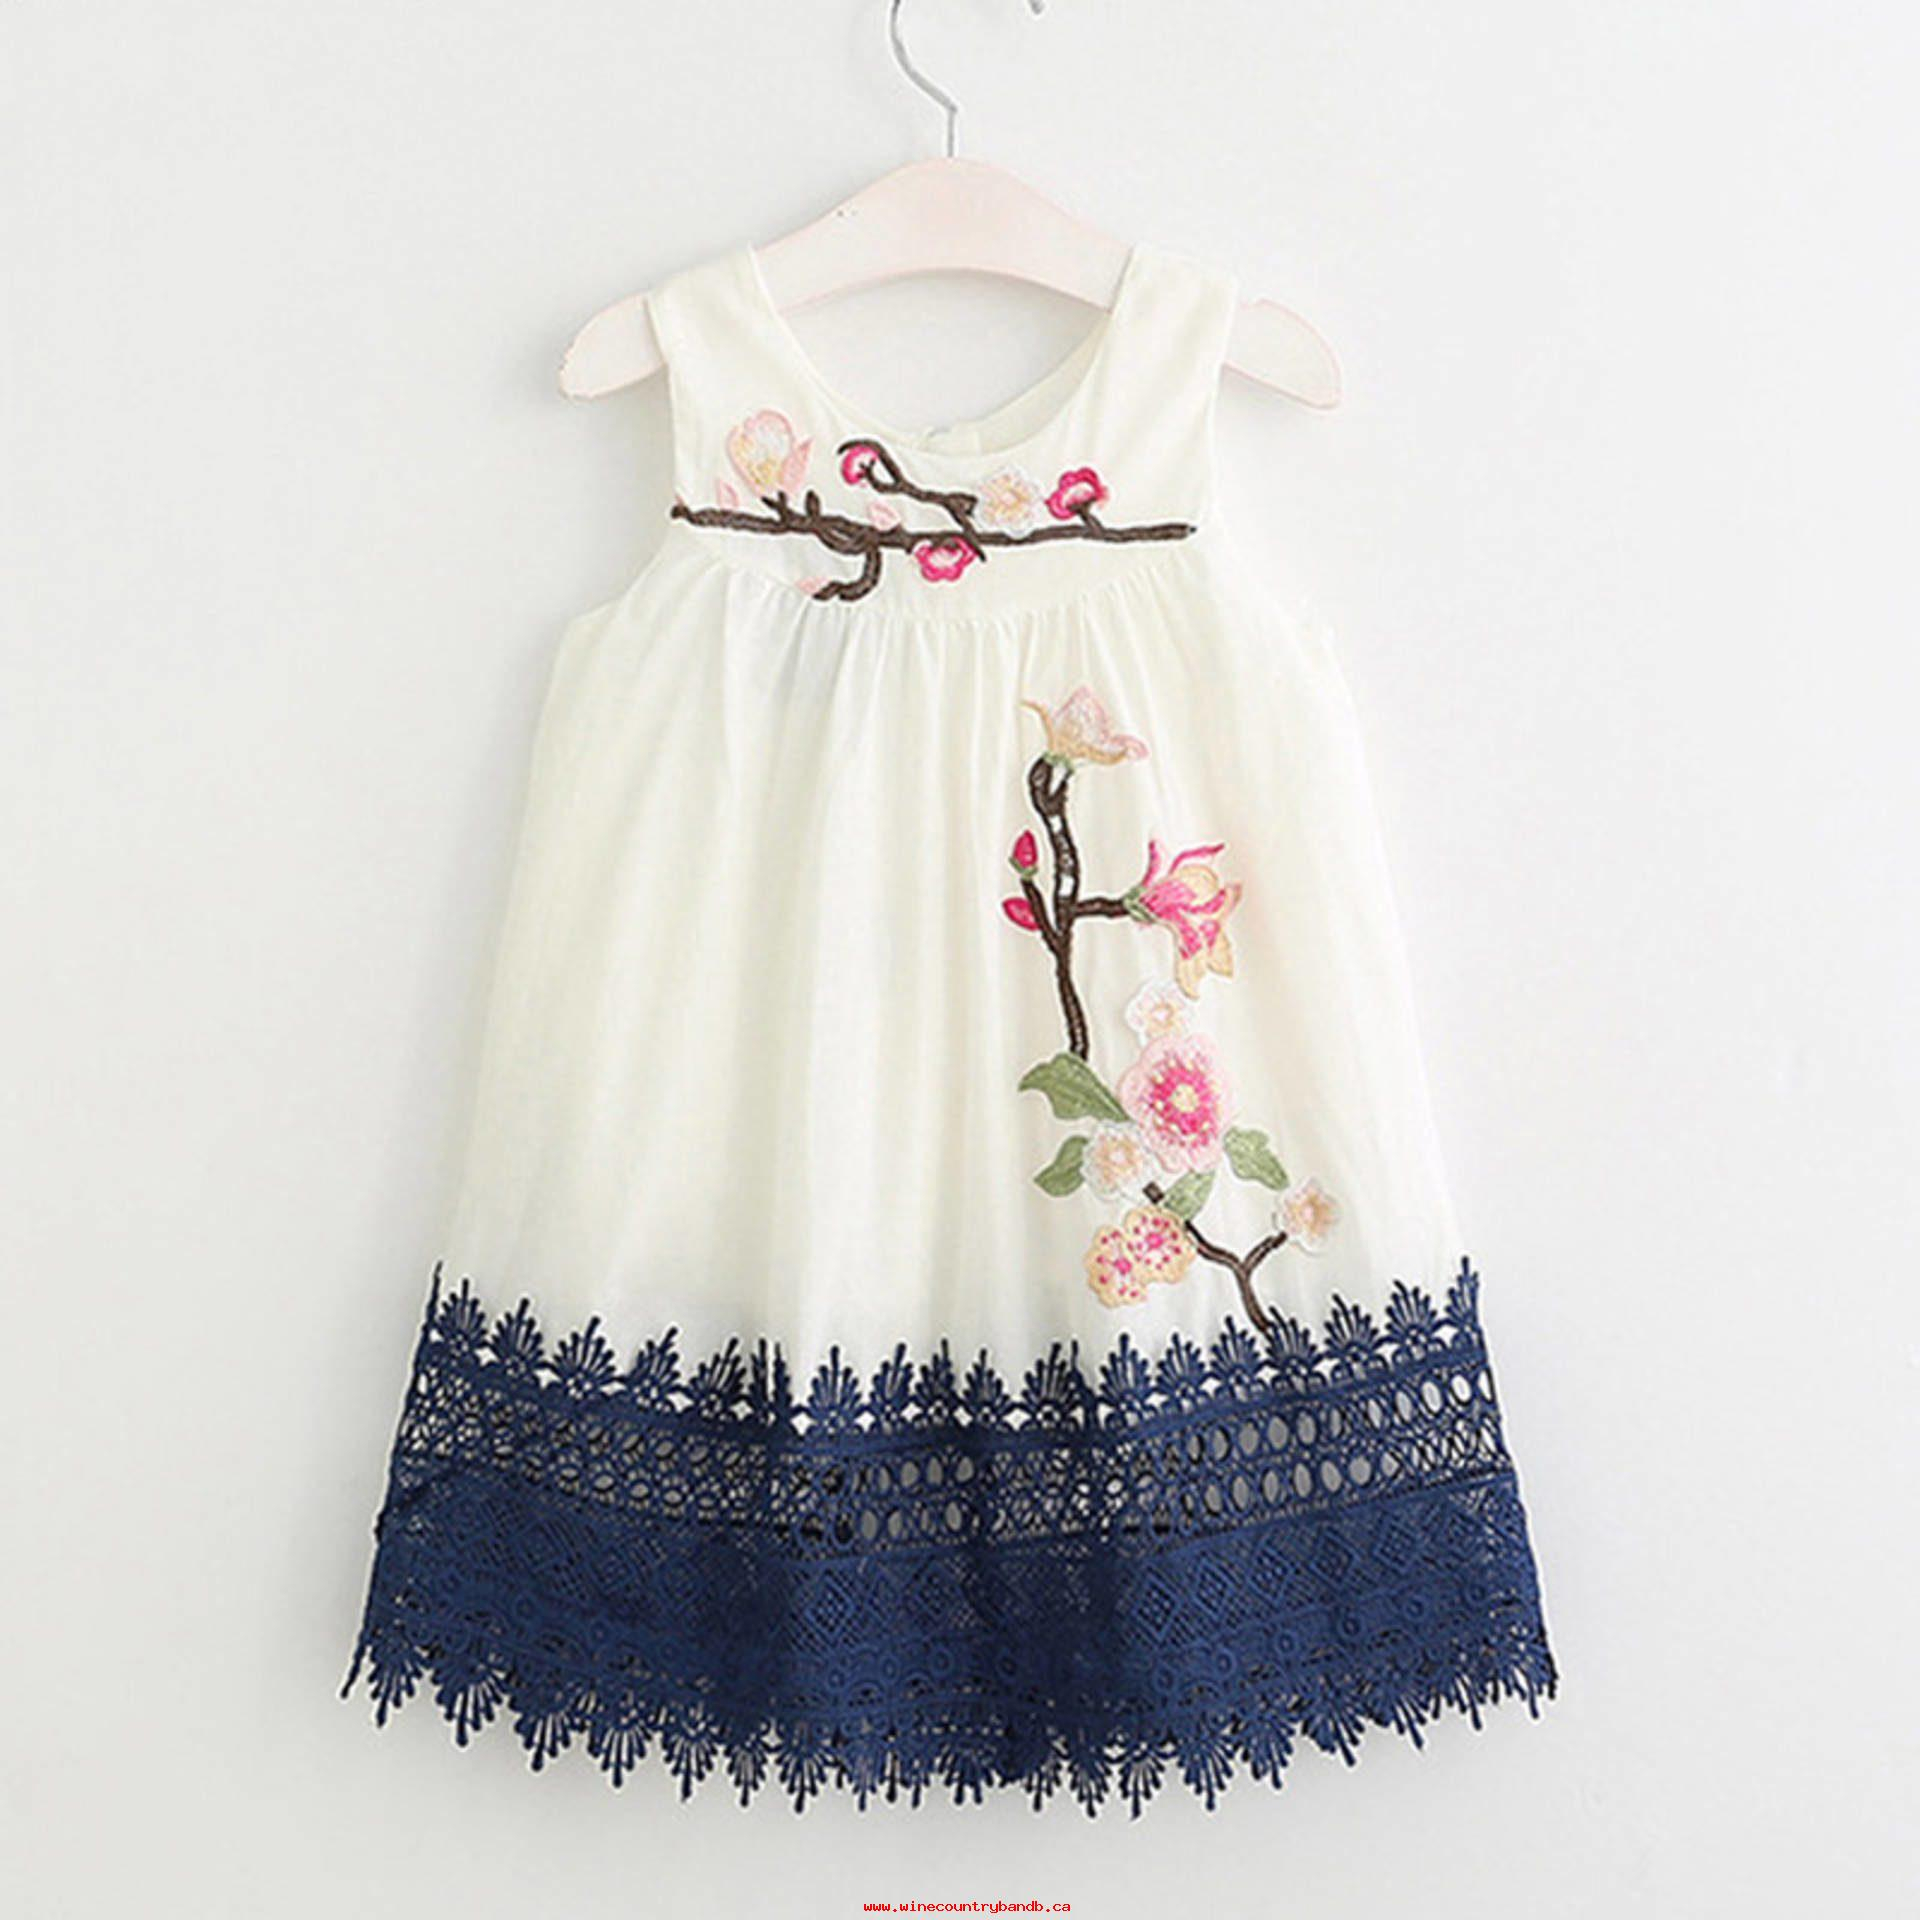 Cute Embroidery Patterns 2018 Summer Style Girls Clothes Sleeveless Cute Embroidery Design